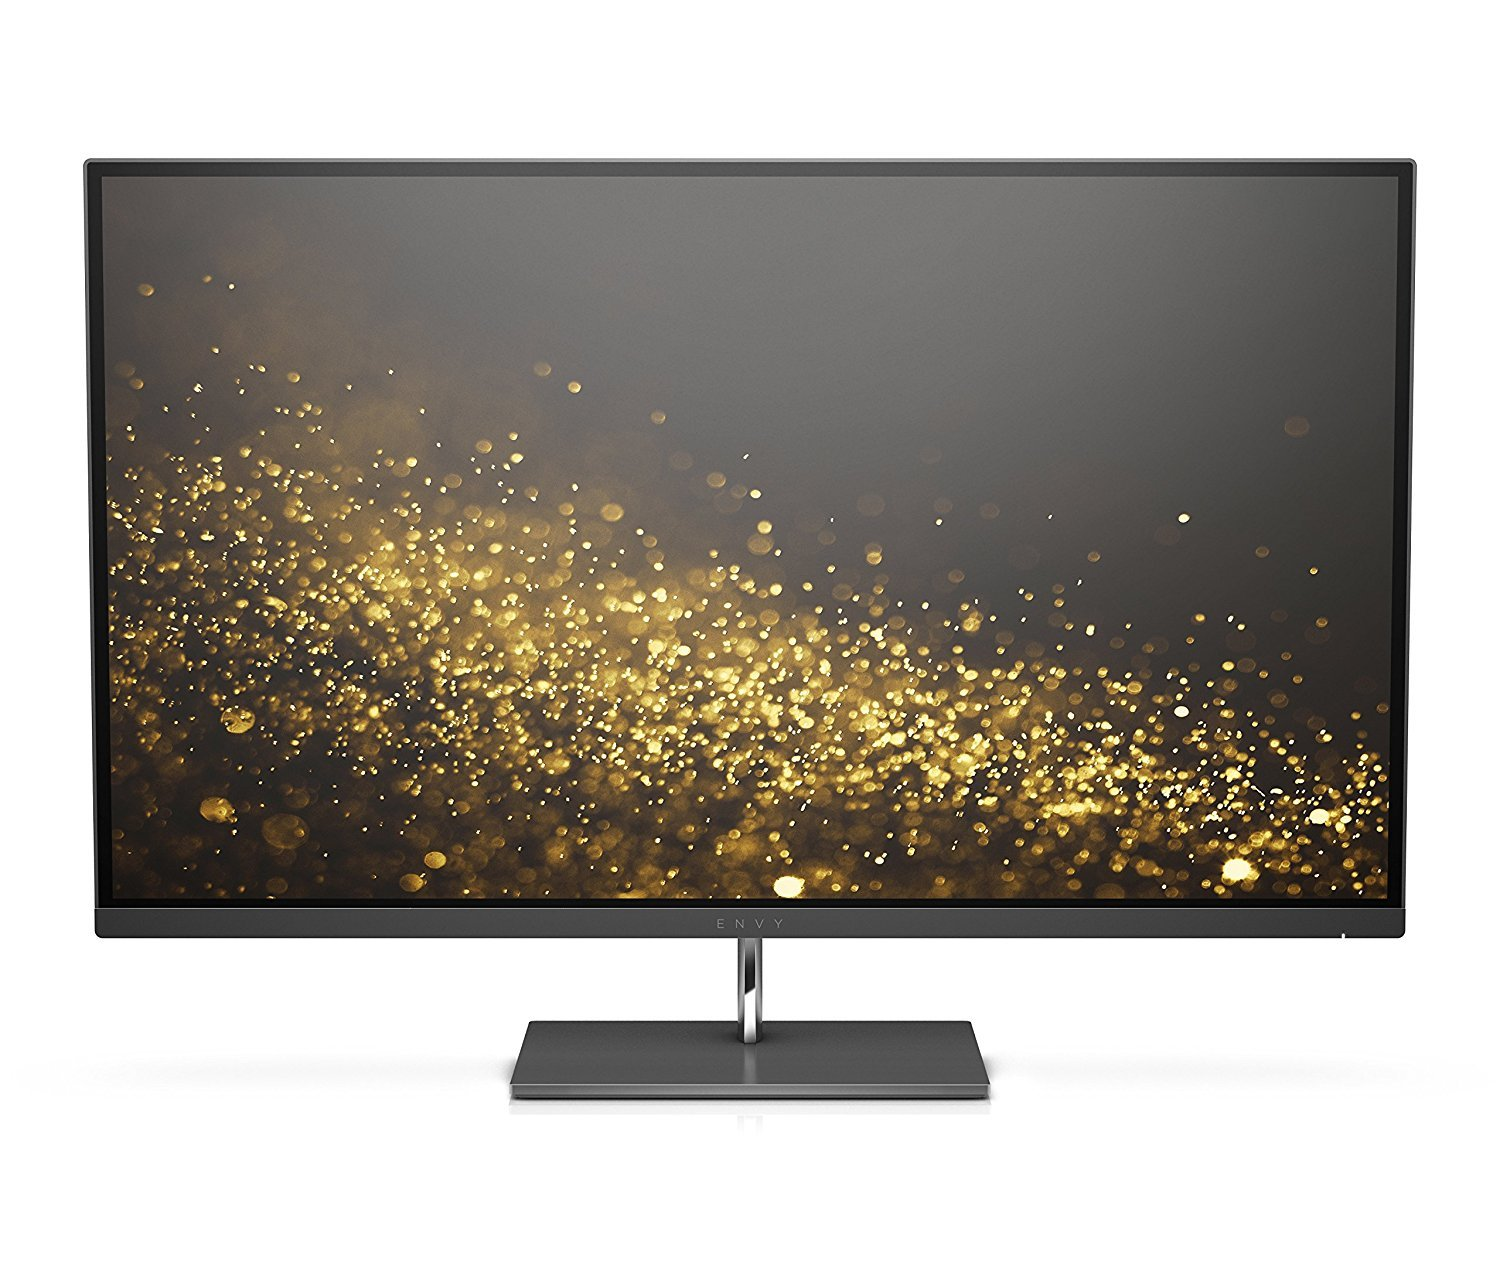 Details about HP Envy 27-inch UHD 4K IPS Monitor with Micro-Edge Bezel and  AMD FreeSync Black